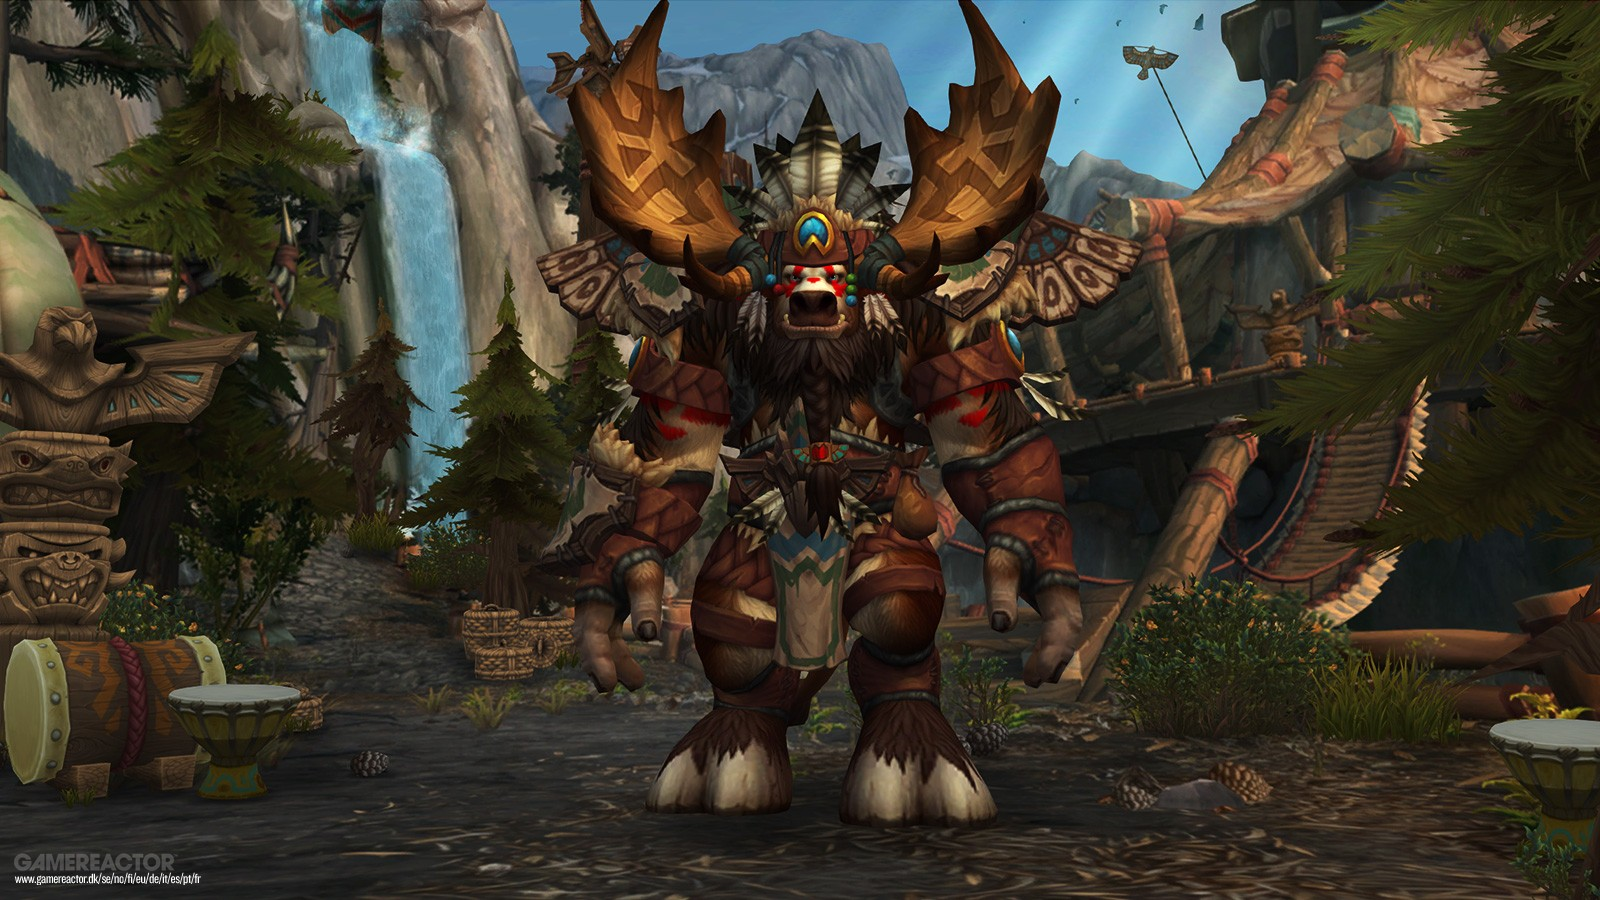 Pictures of World of Warcraft Allied Races and the Old World